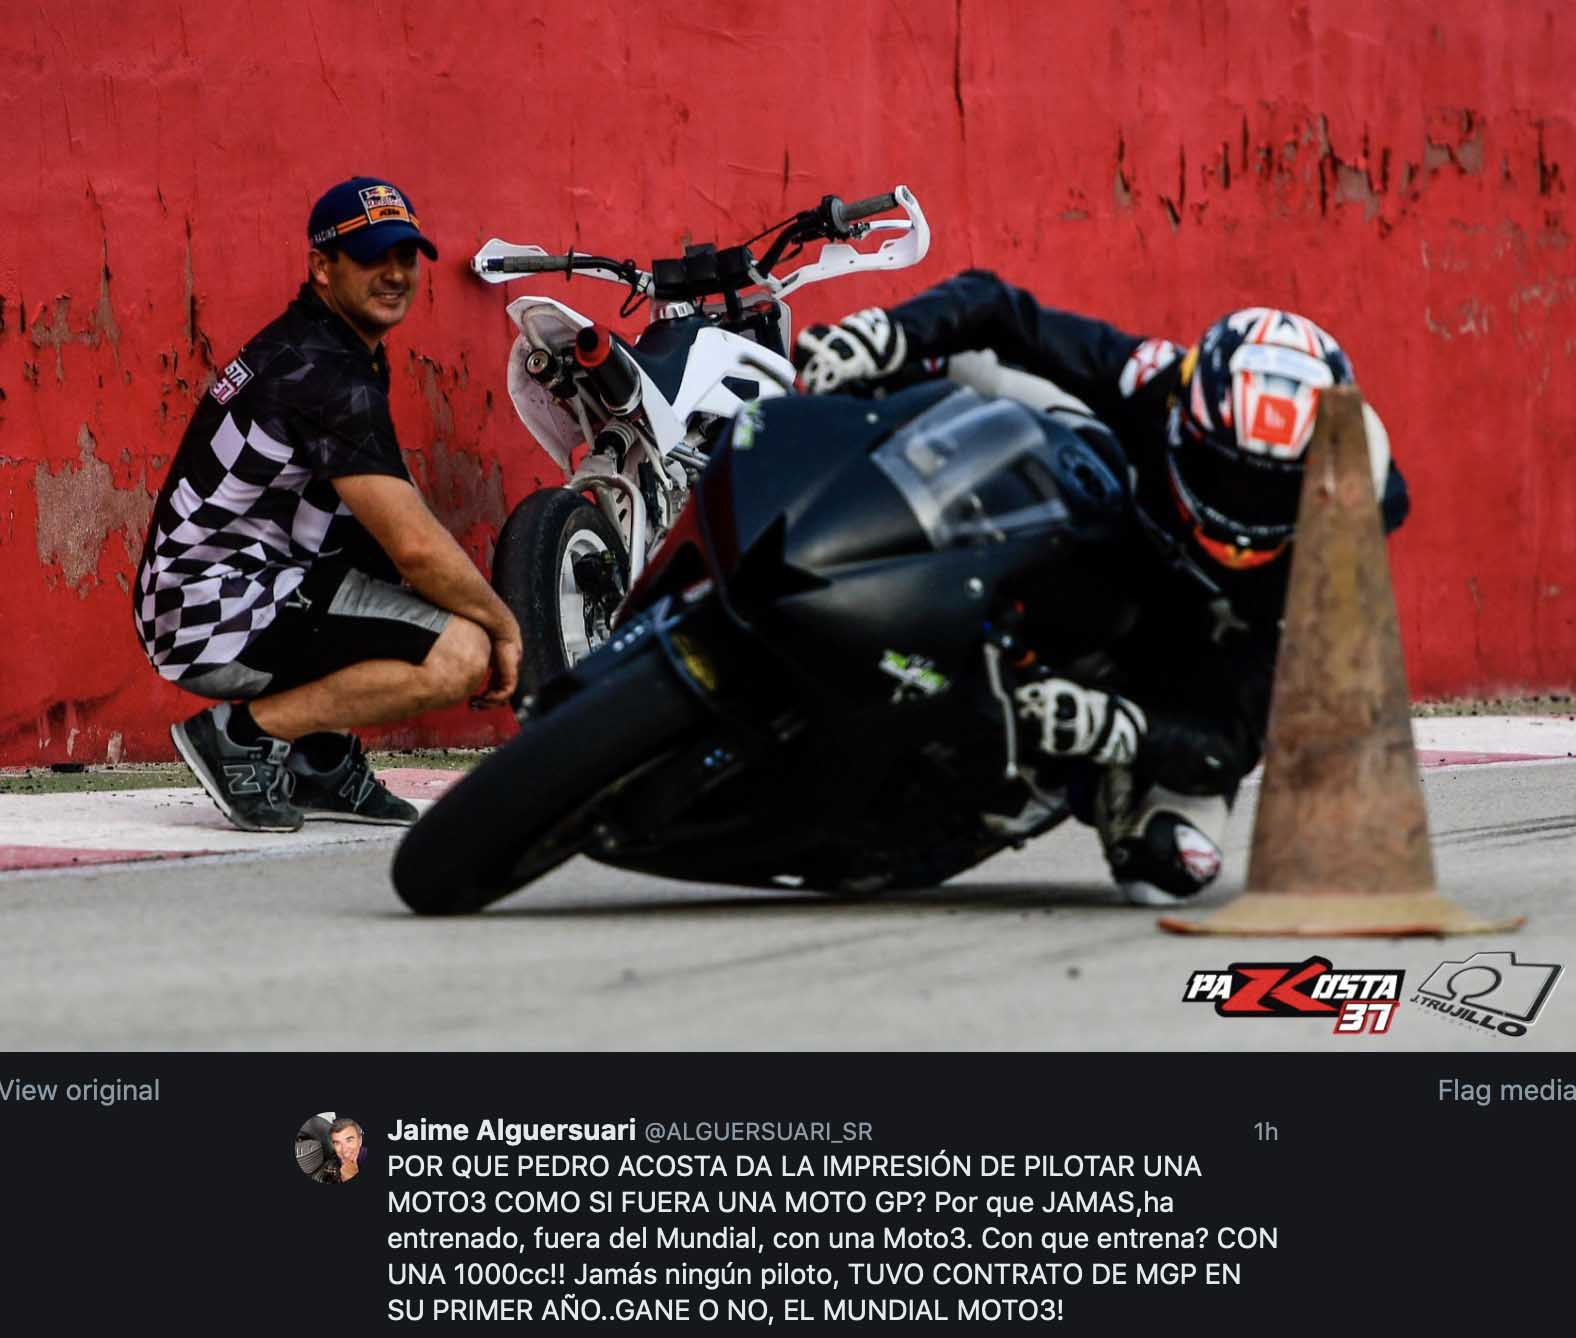 Moto3, Pedro Acosta 'predestined' in MotoGP trains with a Yamaha R1!